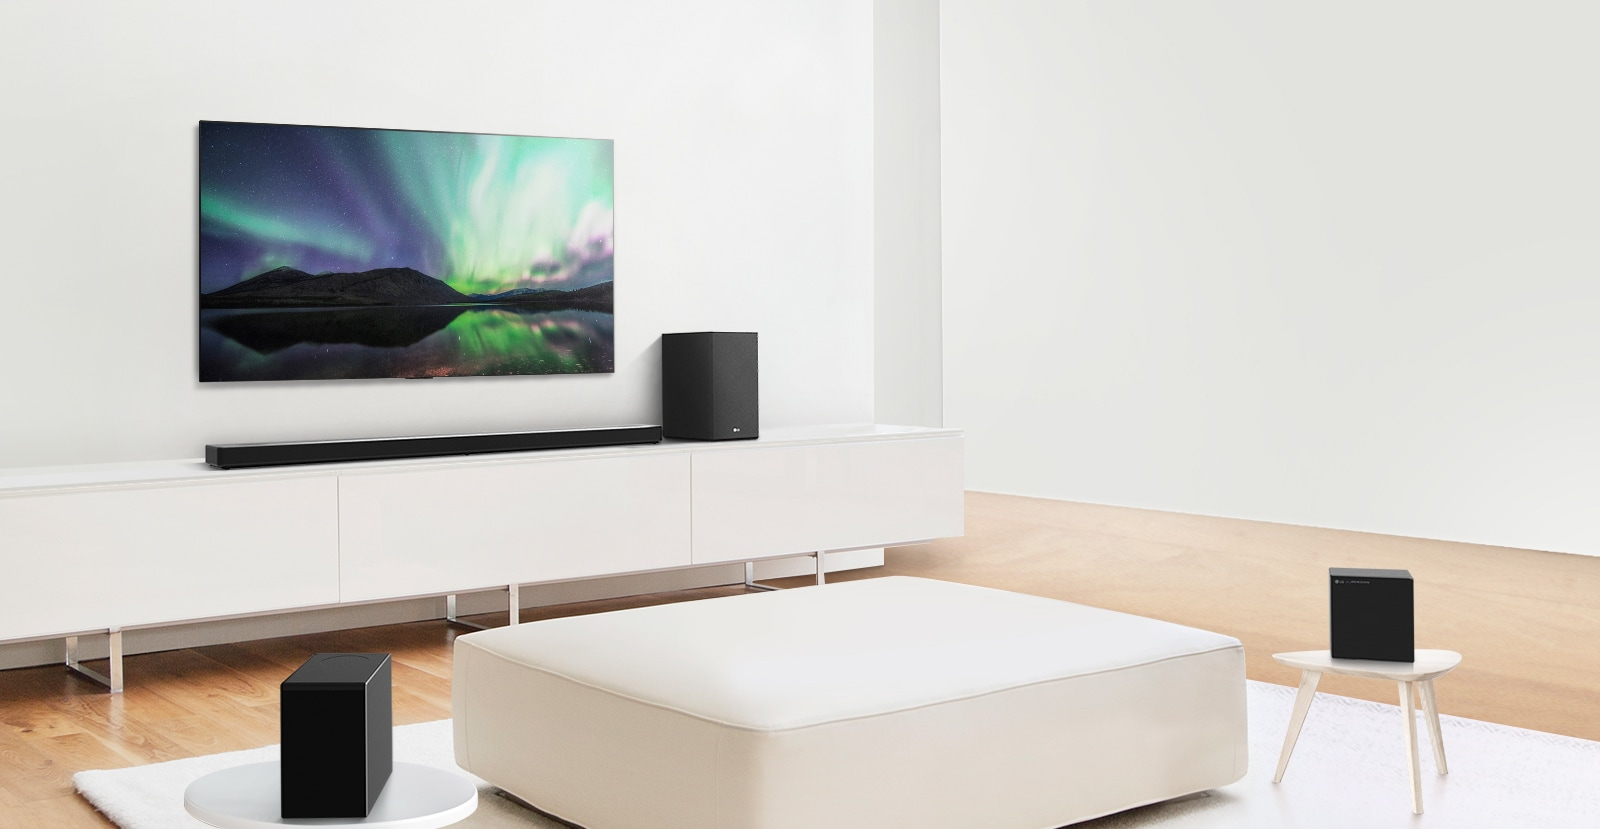 Video preview showing LG Soundbar in a white living room with 7.1.4 channel setup.